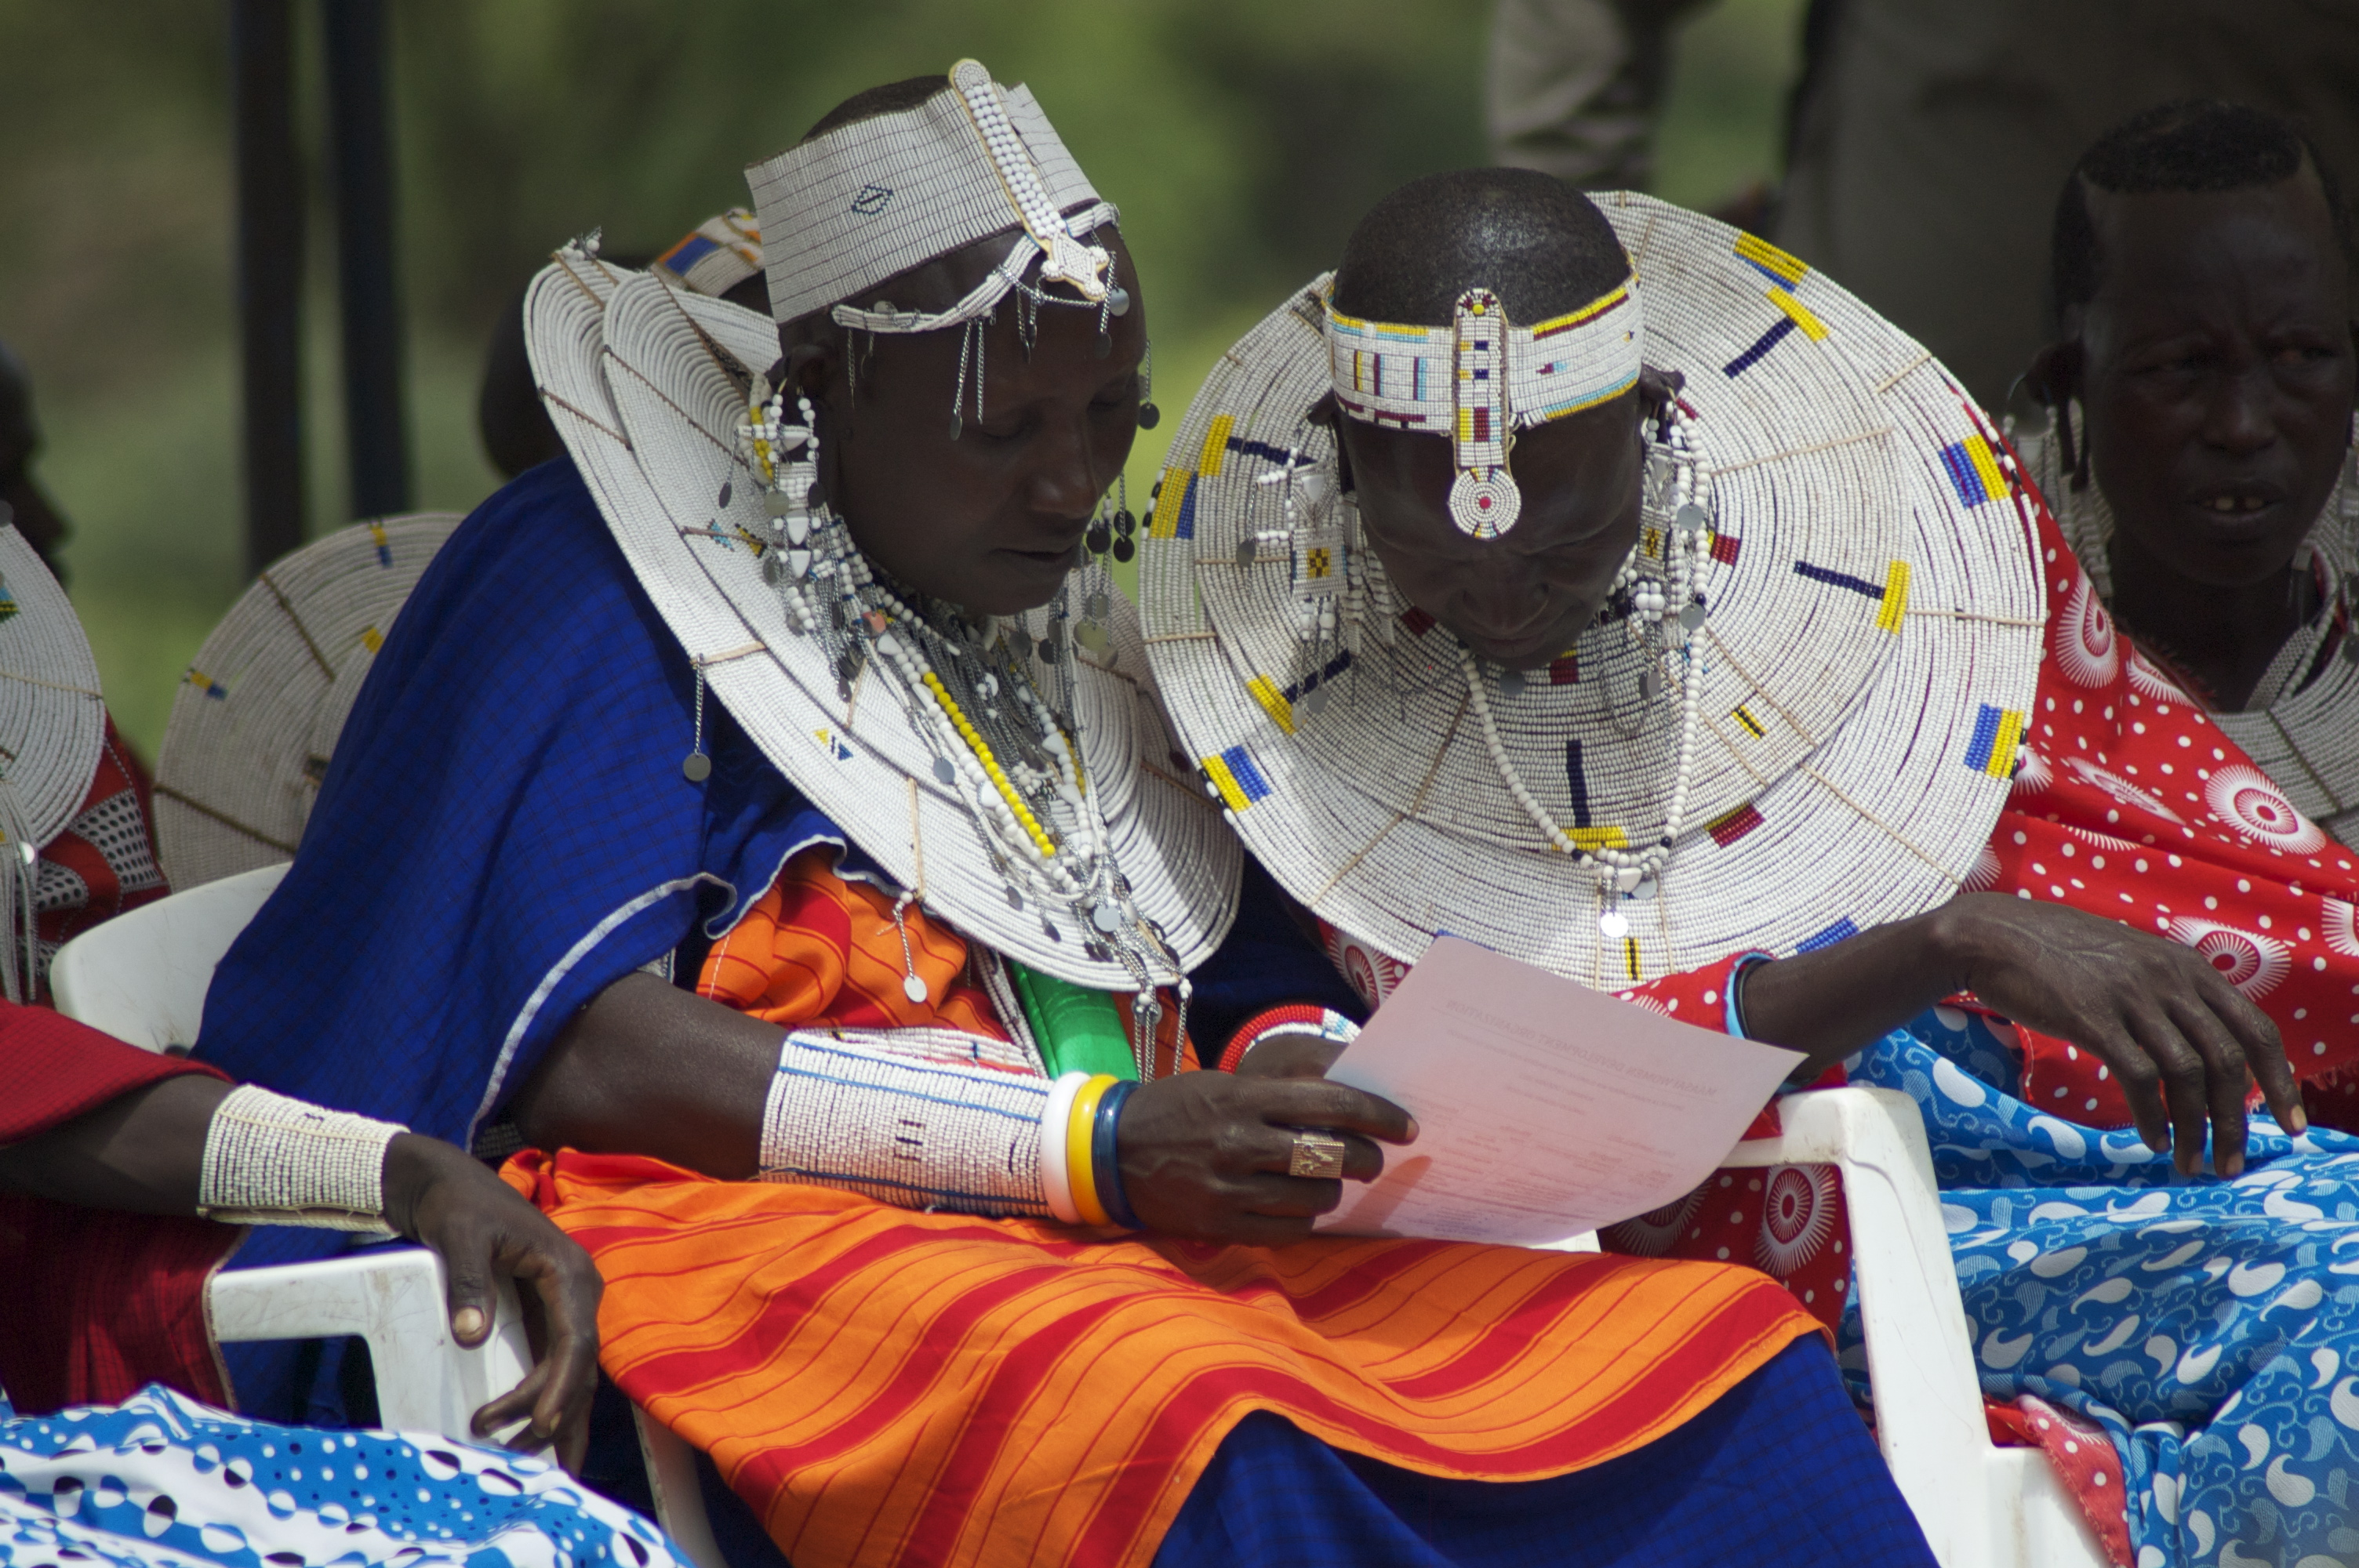 5 maasai women Marriage in maasai culture is one of our most important traditional activities  if it  is an arrangement between friends it may be 4 or 5 cows, or it may be  western  women have a lot of opinions on doweries and bride prices,.